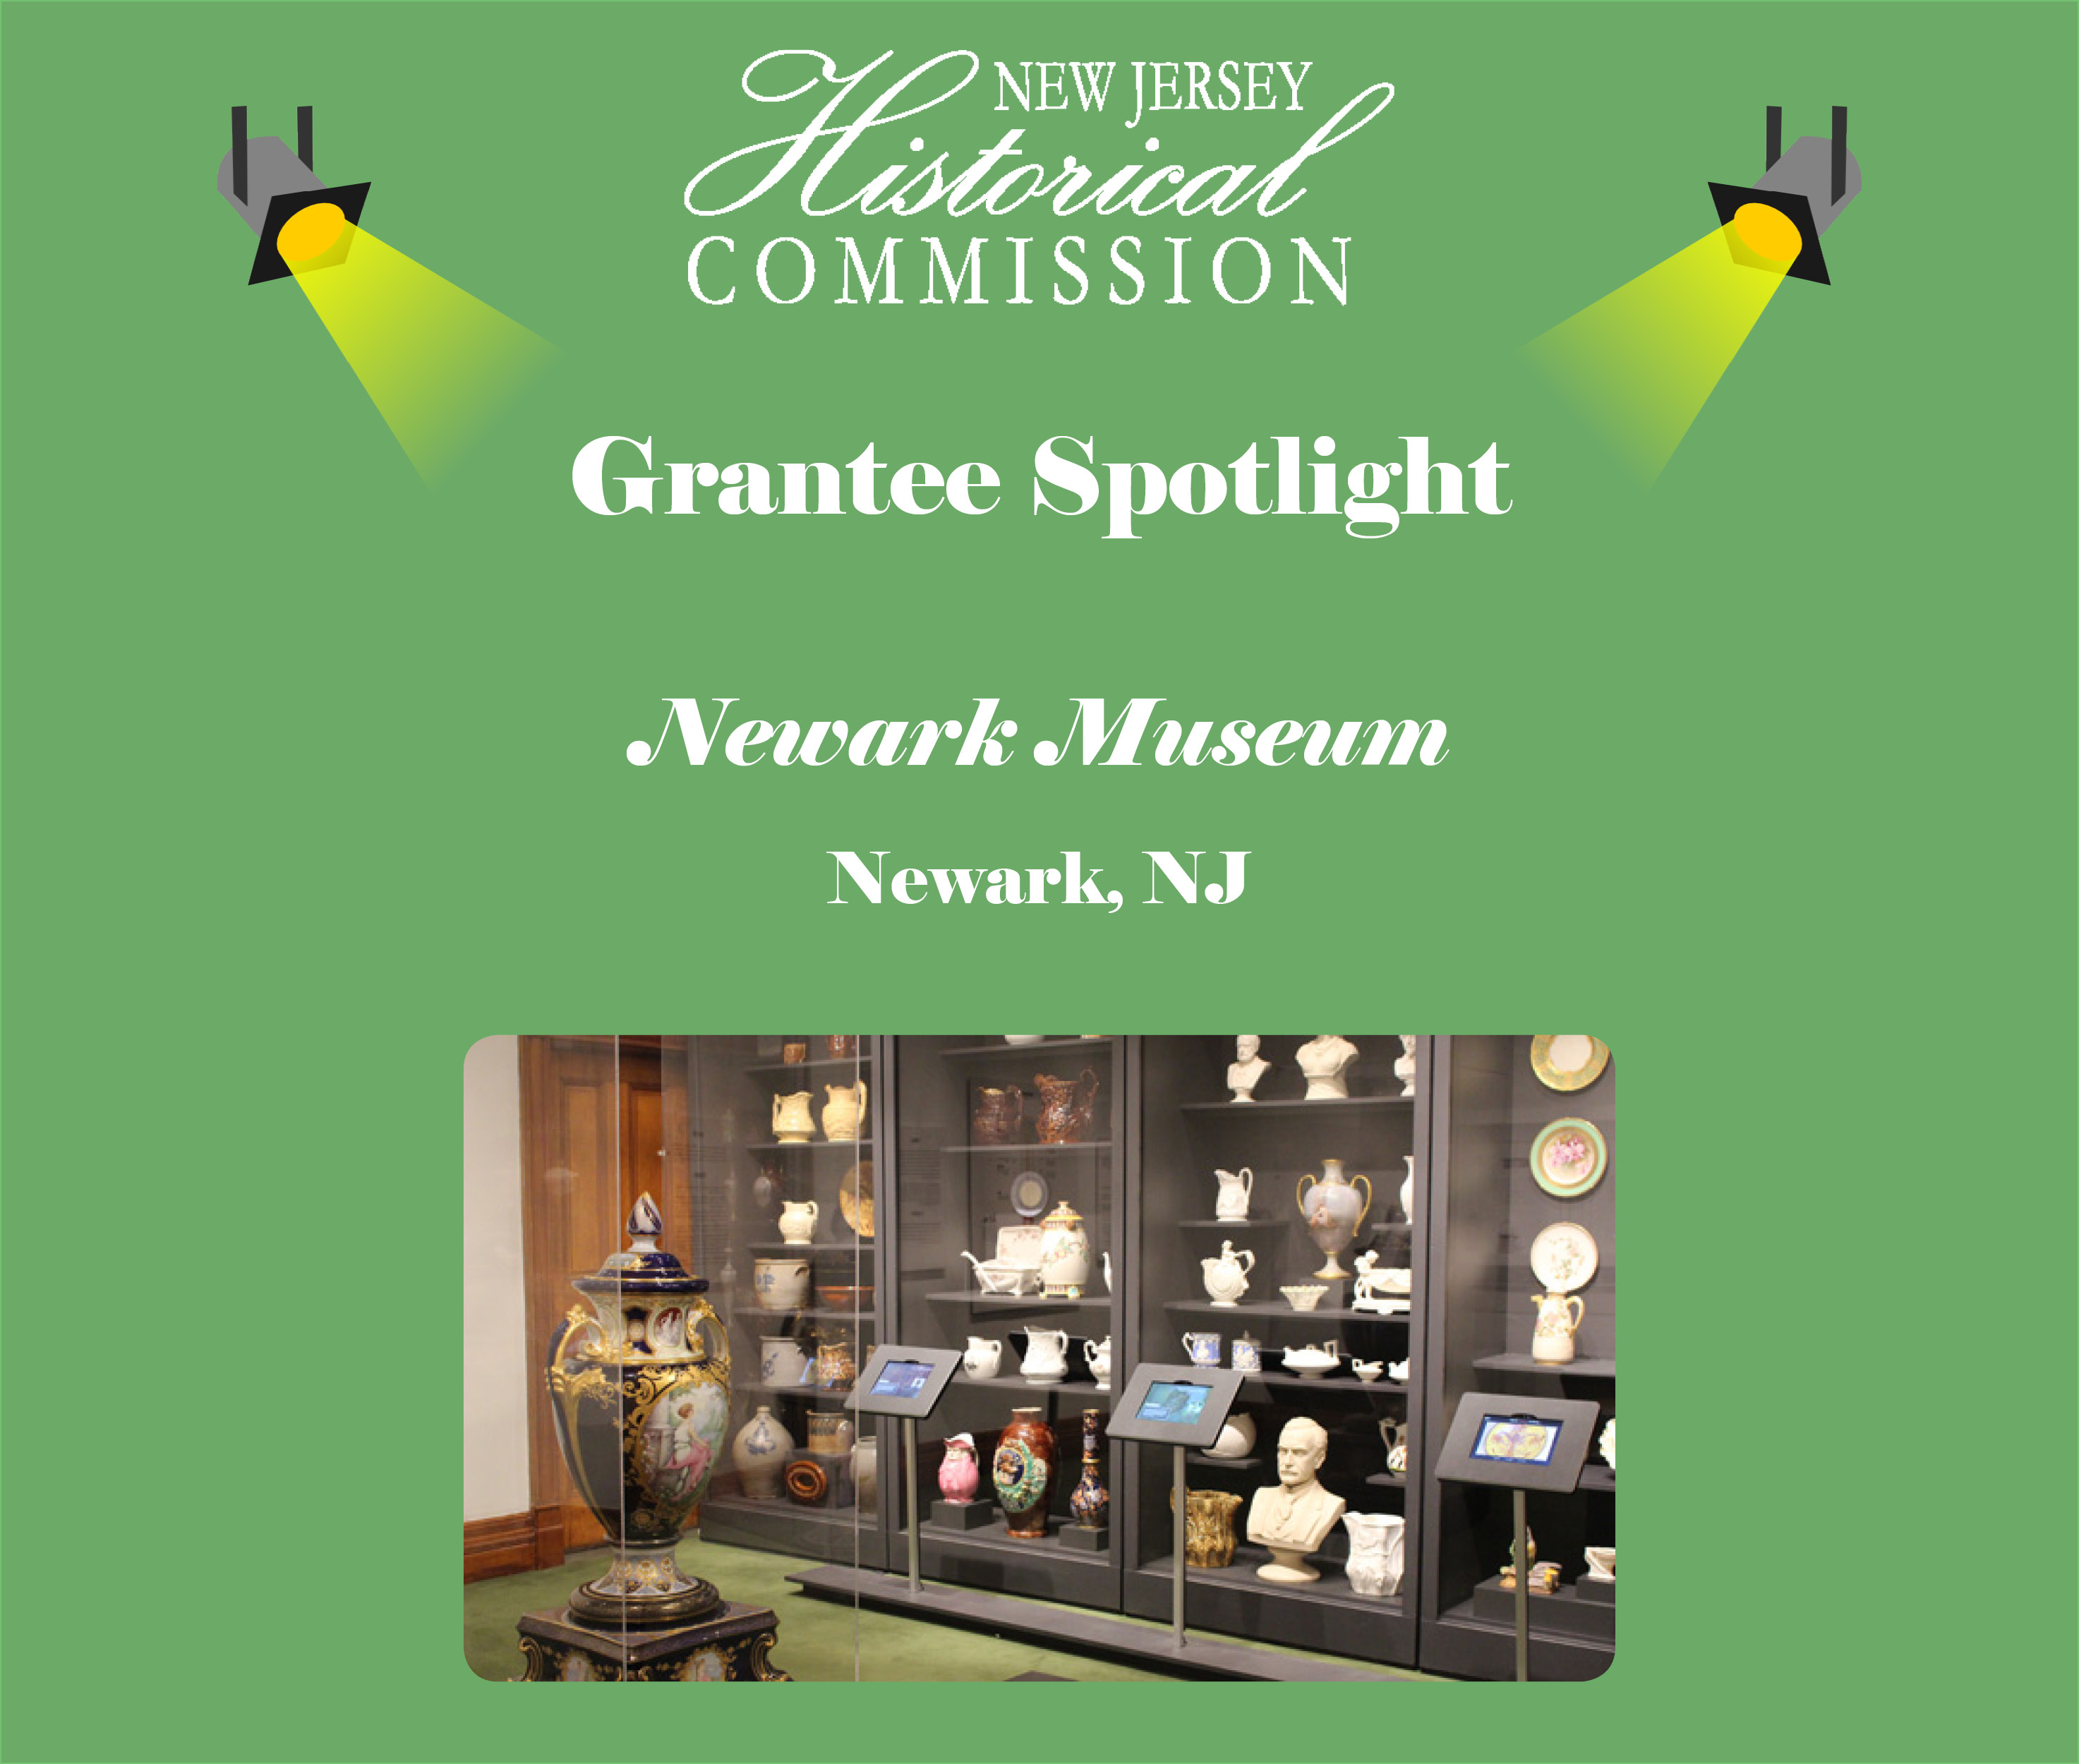 New Jersey Historical Commission (NJHC) Grantee Spotlight: The Newark Museum